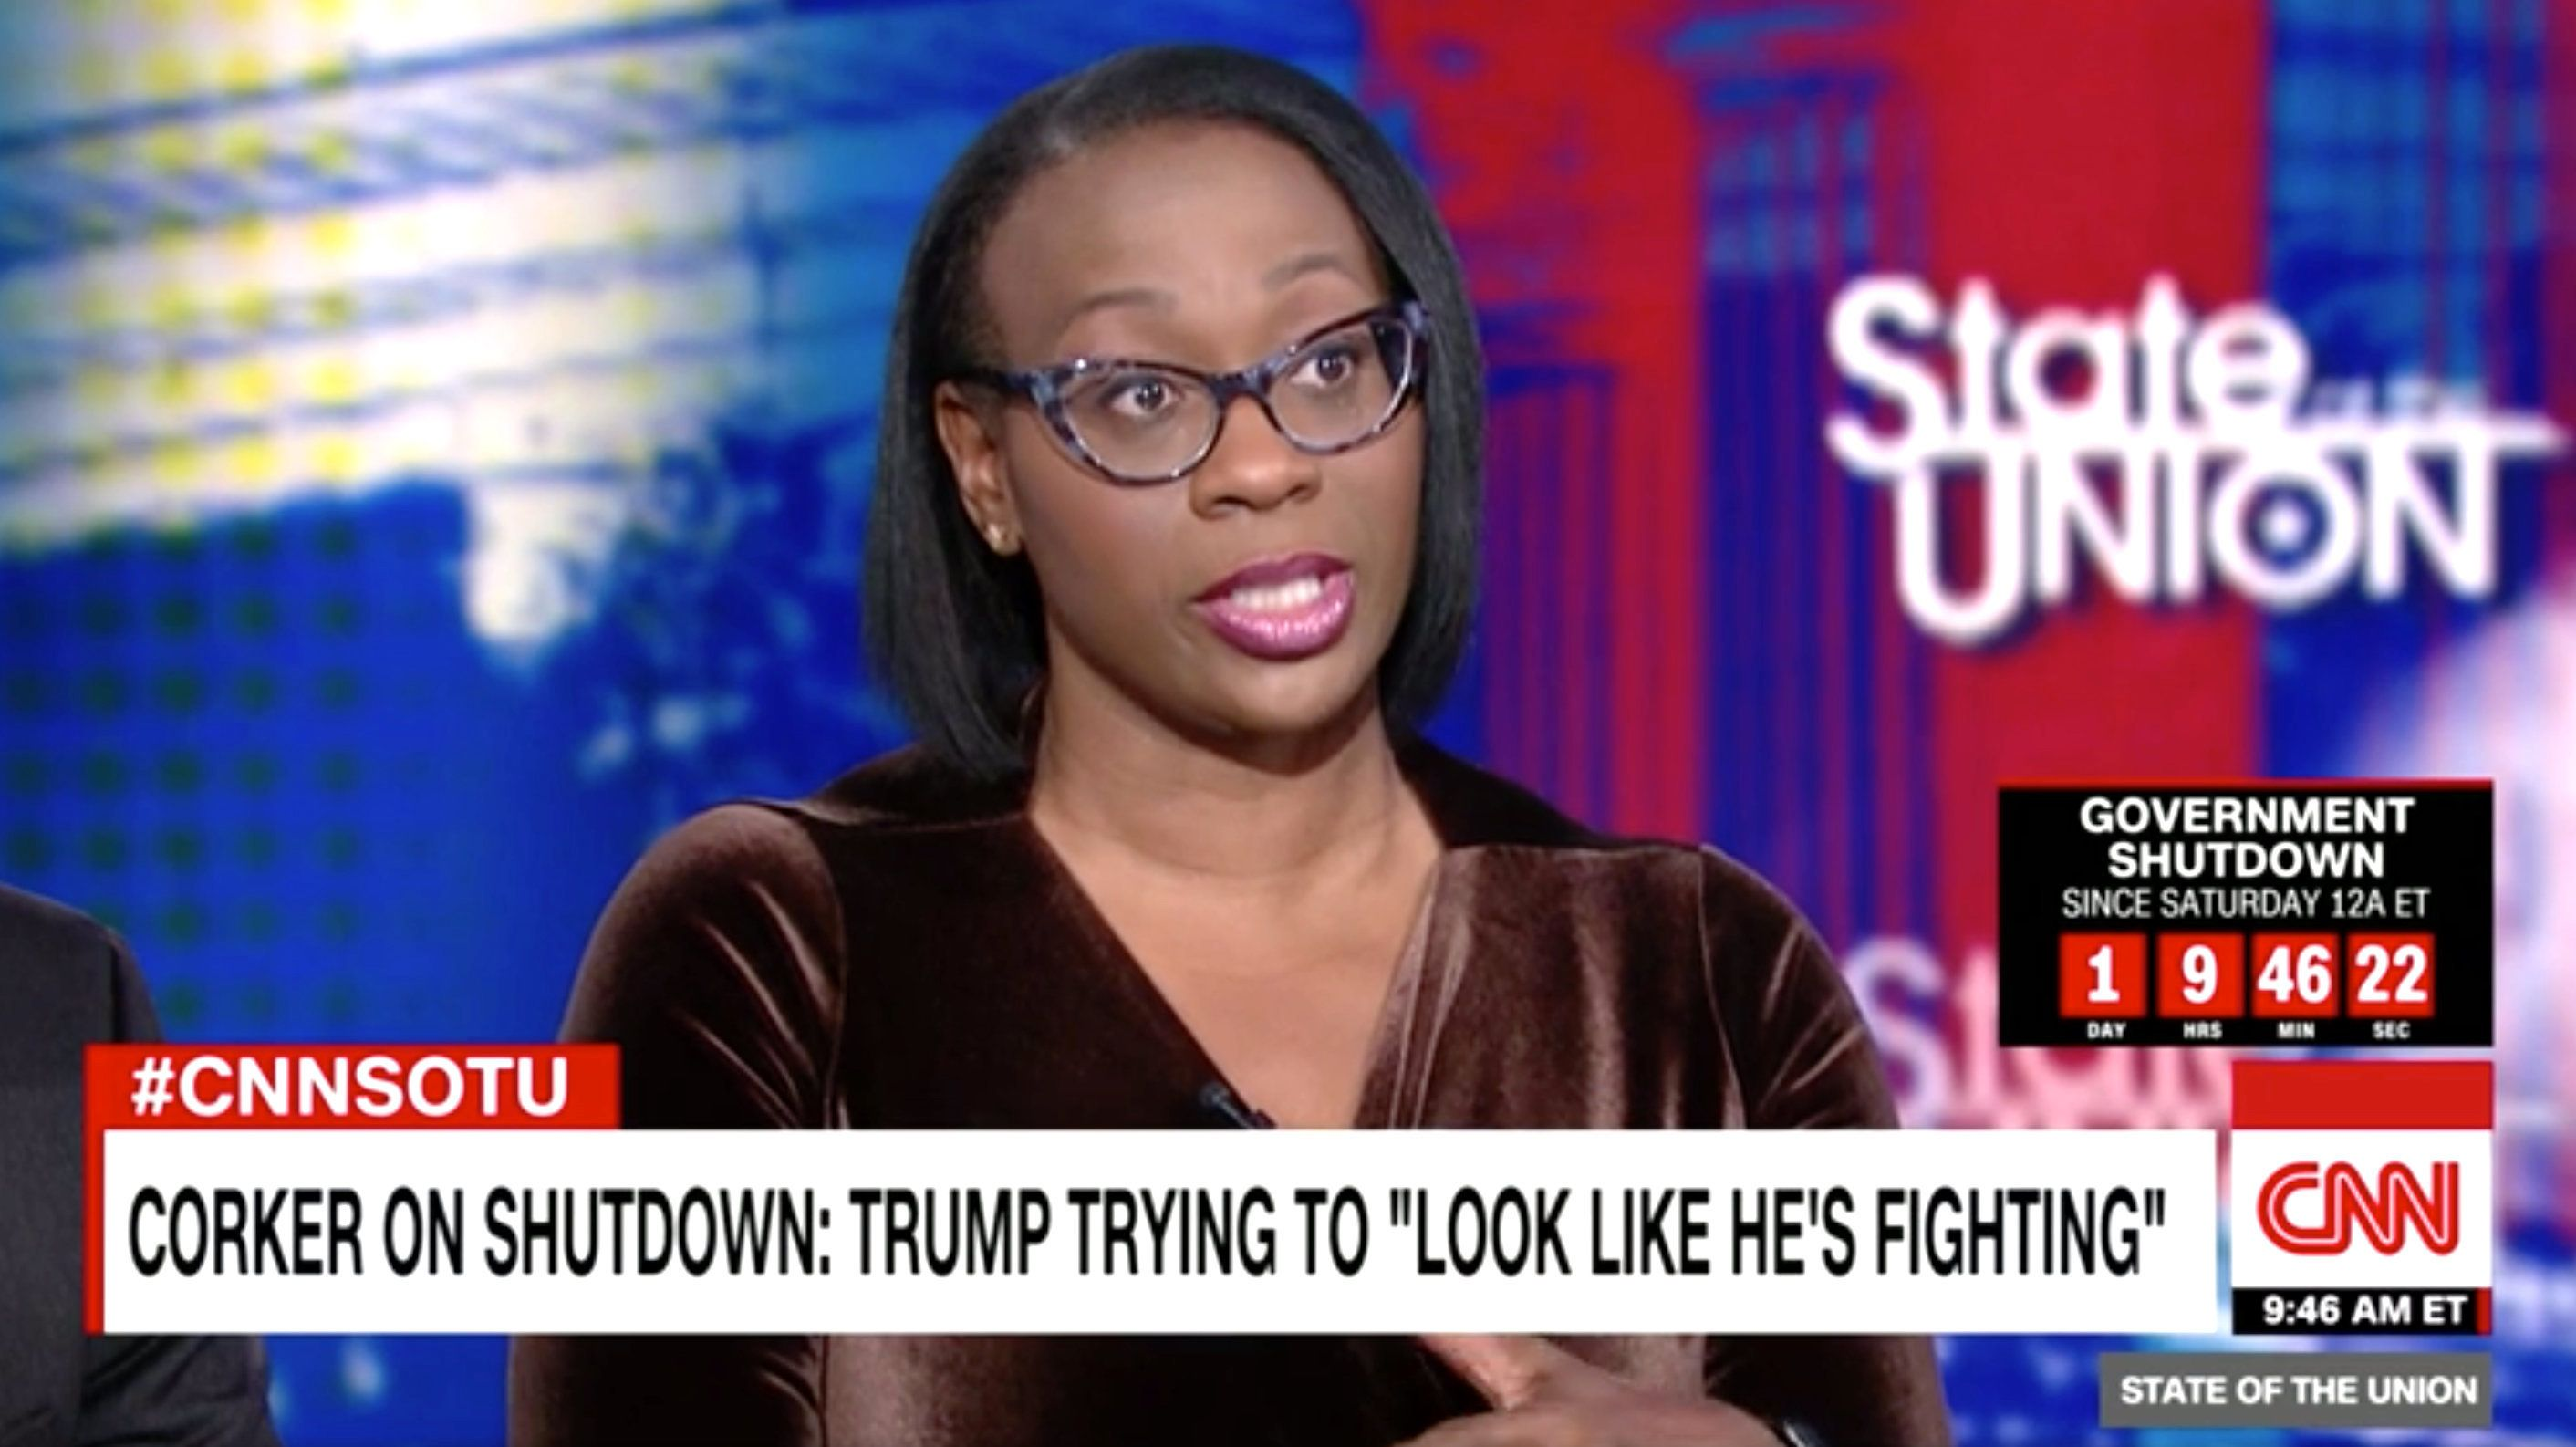 CNN political commentator Nina Turner said the federal government shutdown reminded her of the dystopian Hunger Games saga.